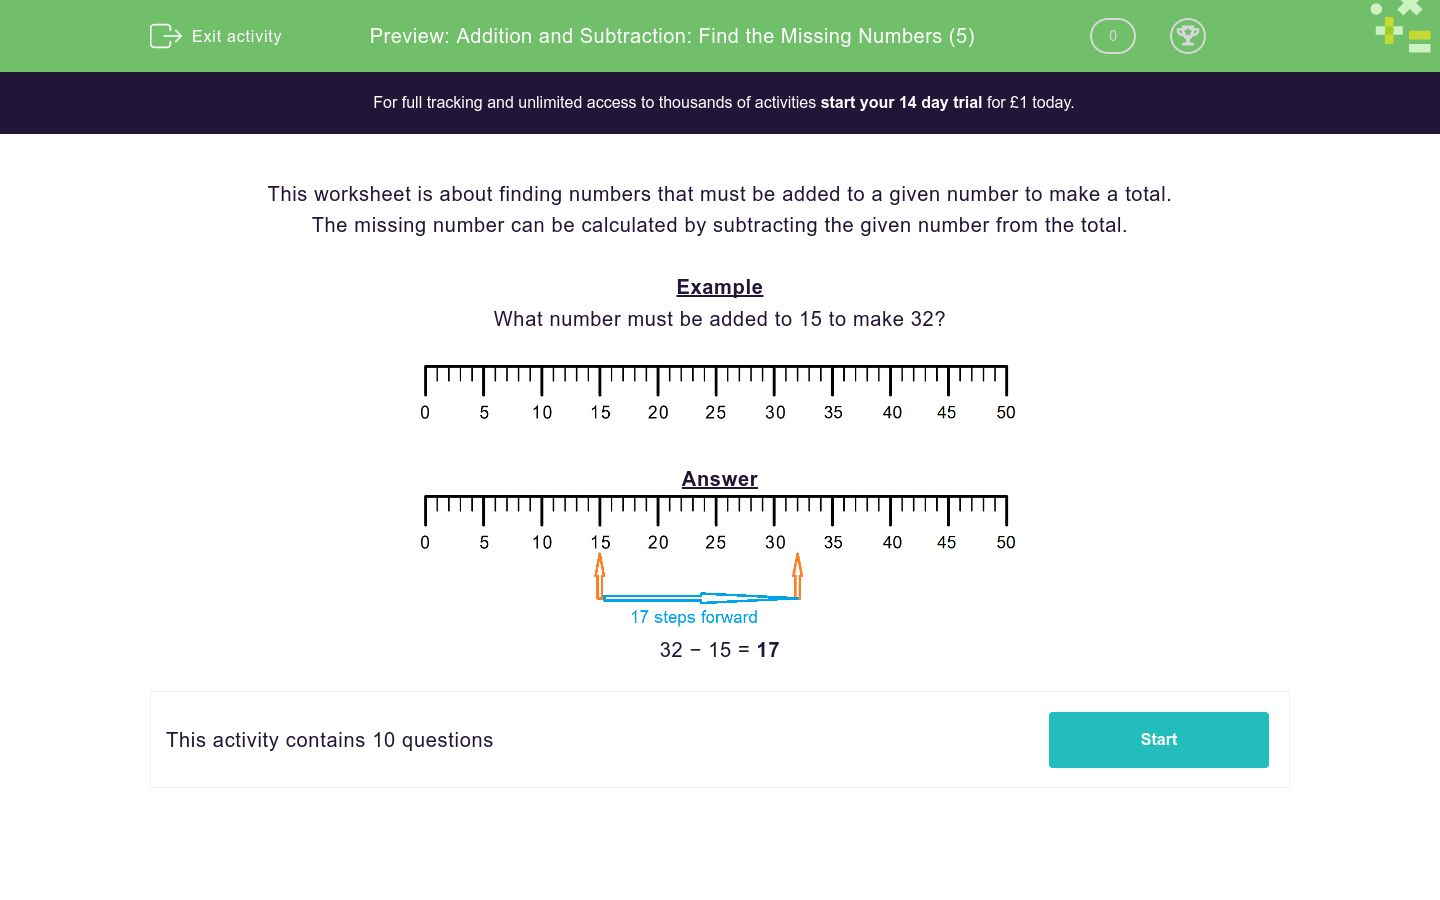 'Addition and Subtraction: Find the Missing Numbers (5)' worksheet